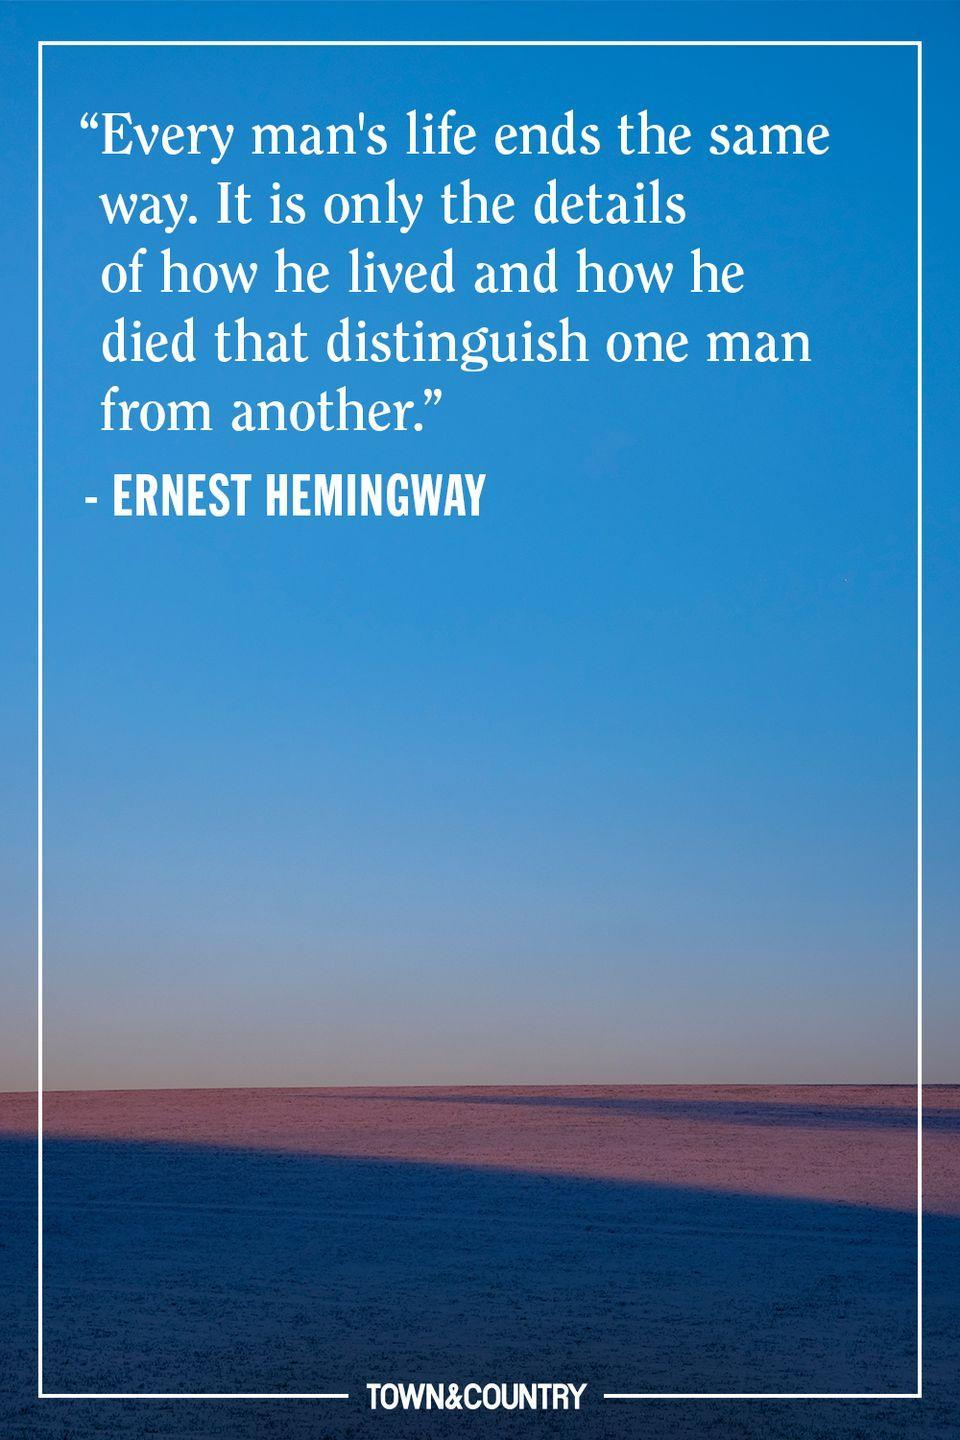 """<p>""""Every man's life ends the same way. It is only the details of how he lived and how he died that distinguish one man from another.""""</p><p>– Ernest Hemingway</p>"""